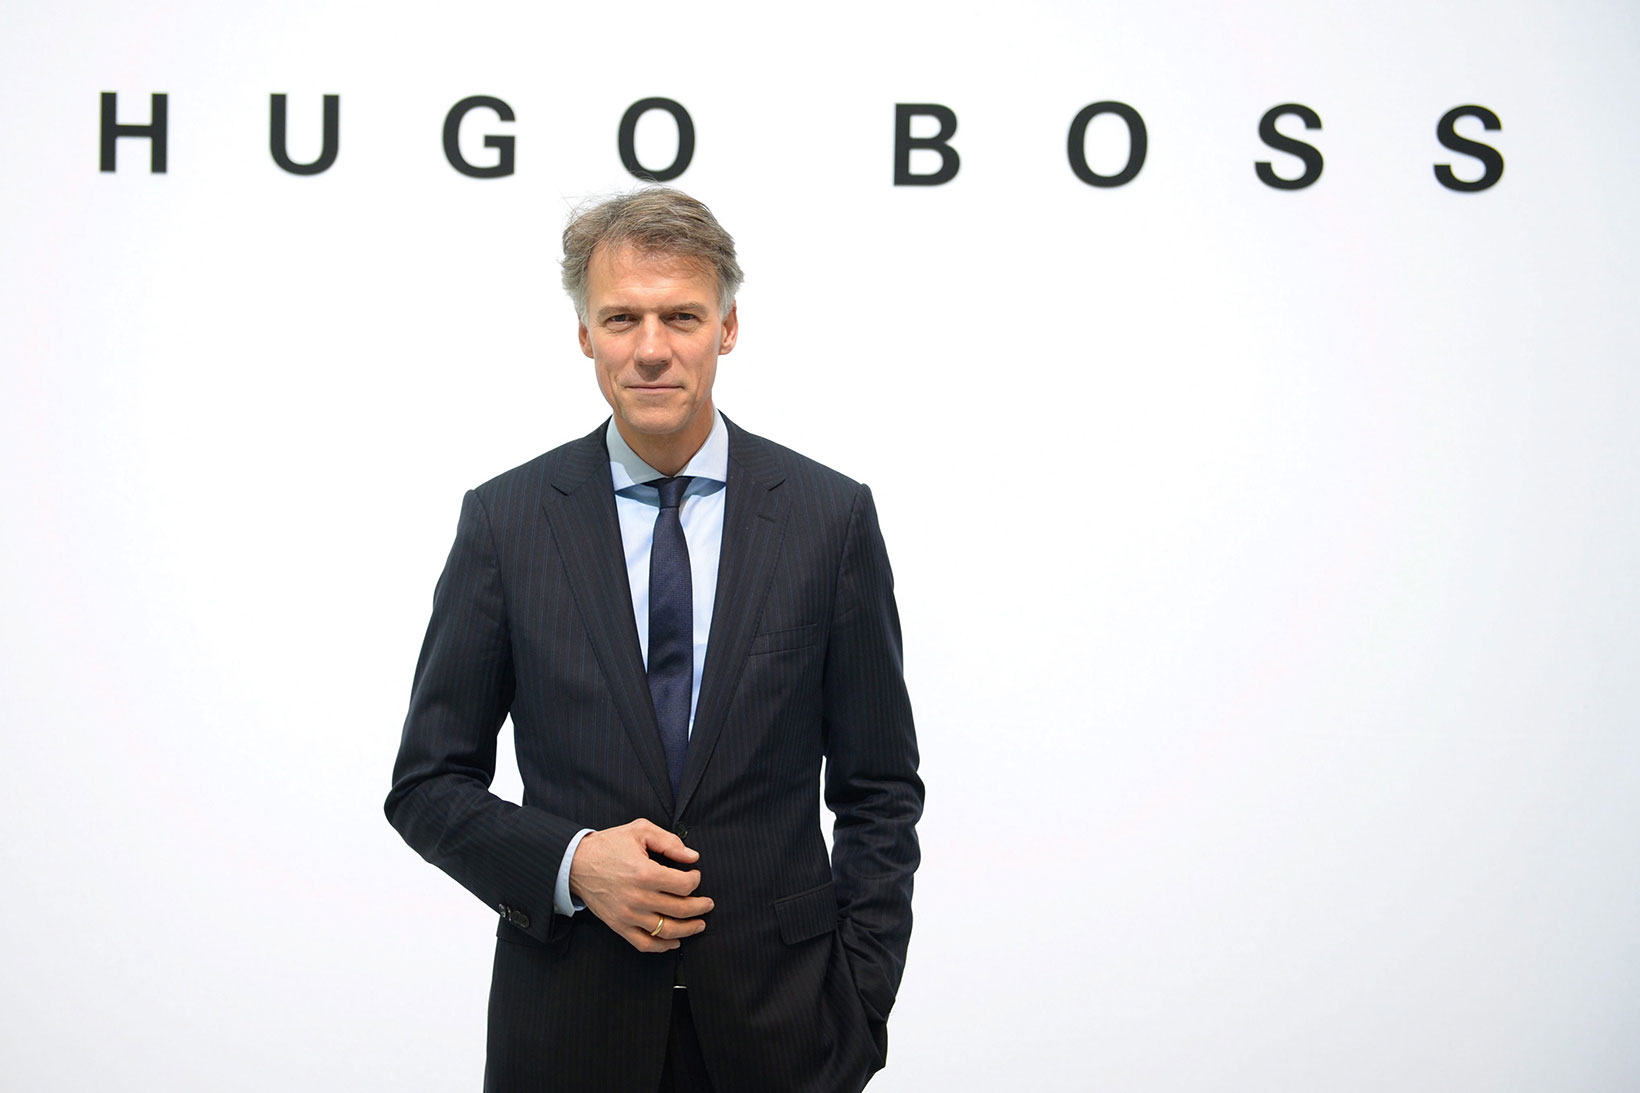 Hugo Boss' CEO Steps Down